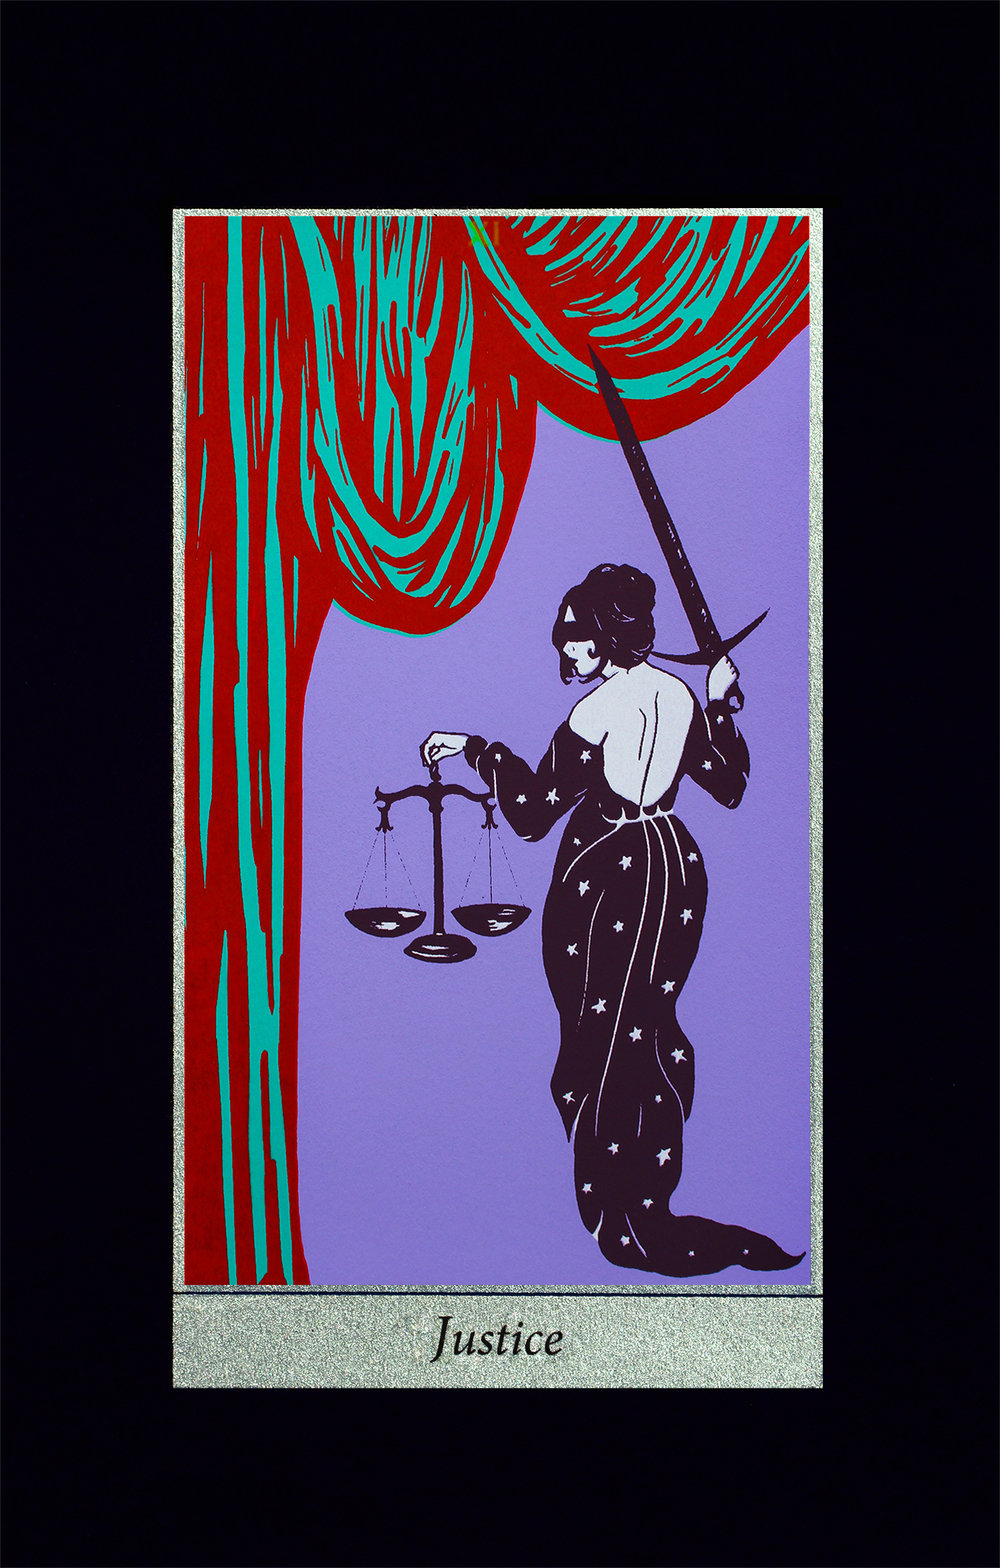 Justice, 2018, screenprint on black Strathmore paper, 8x12""